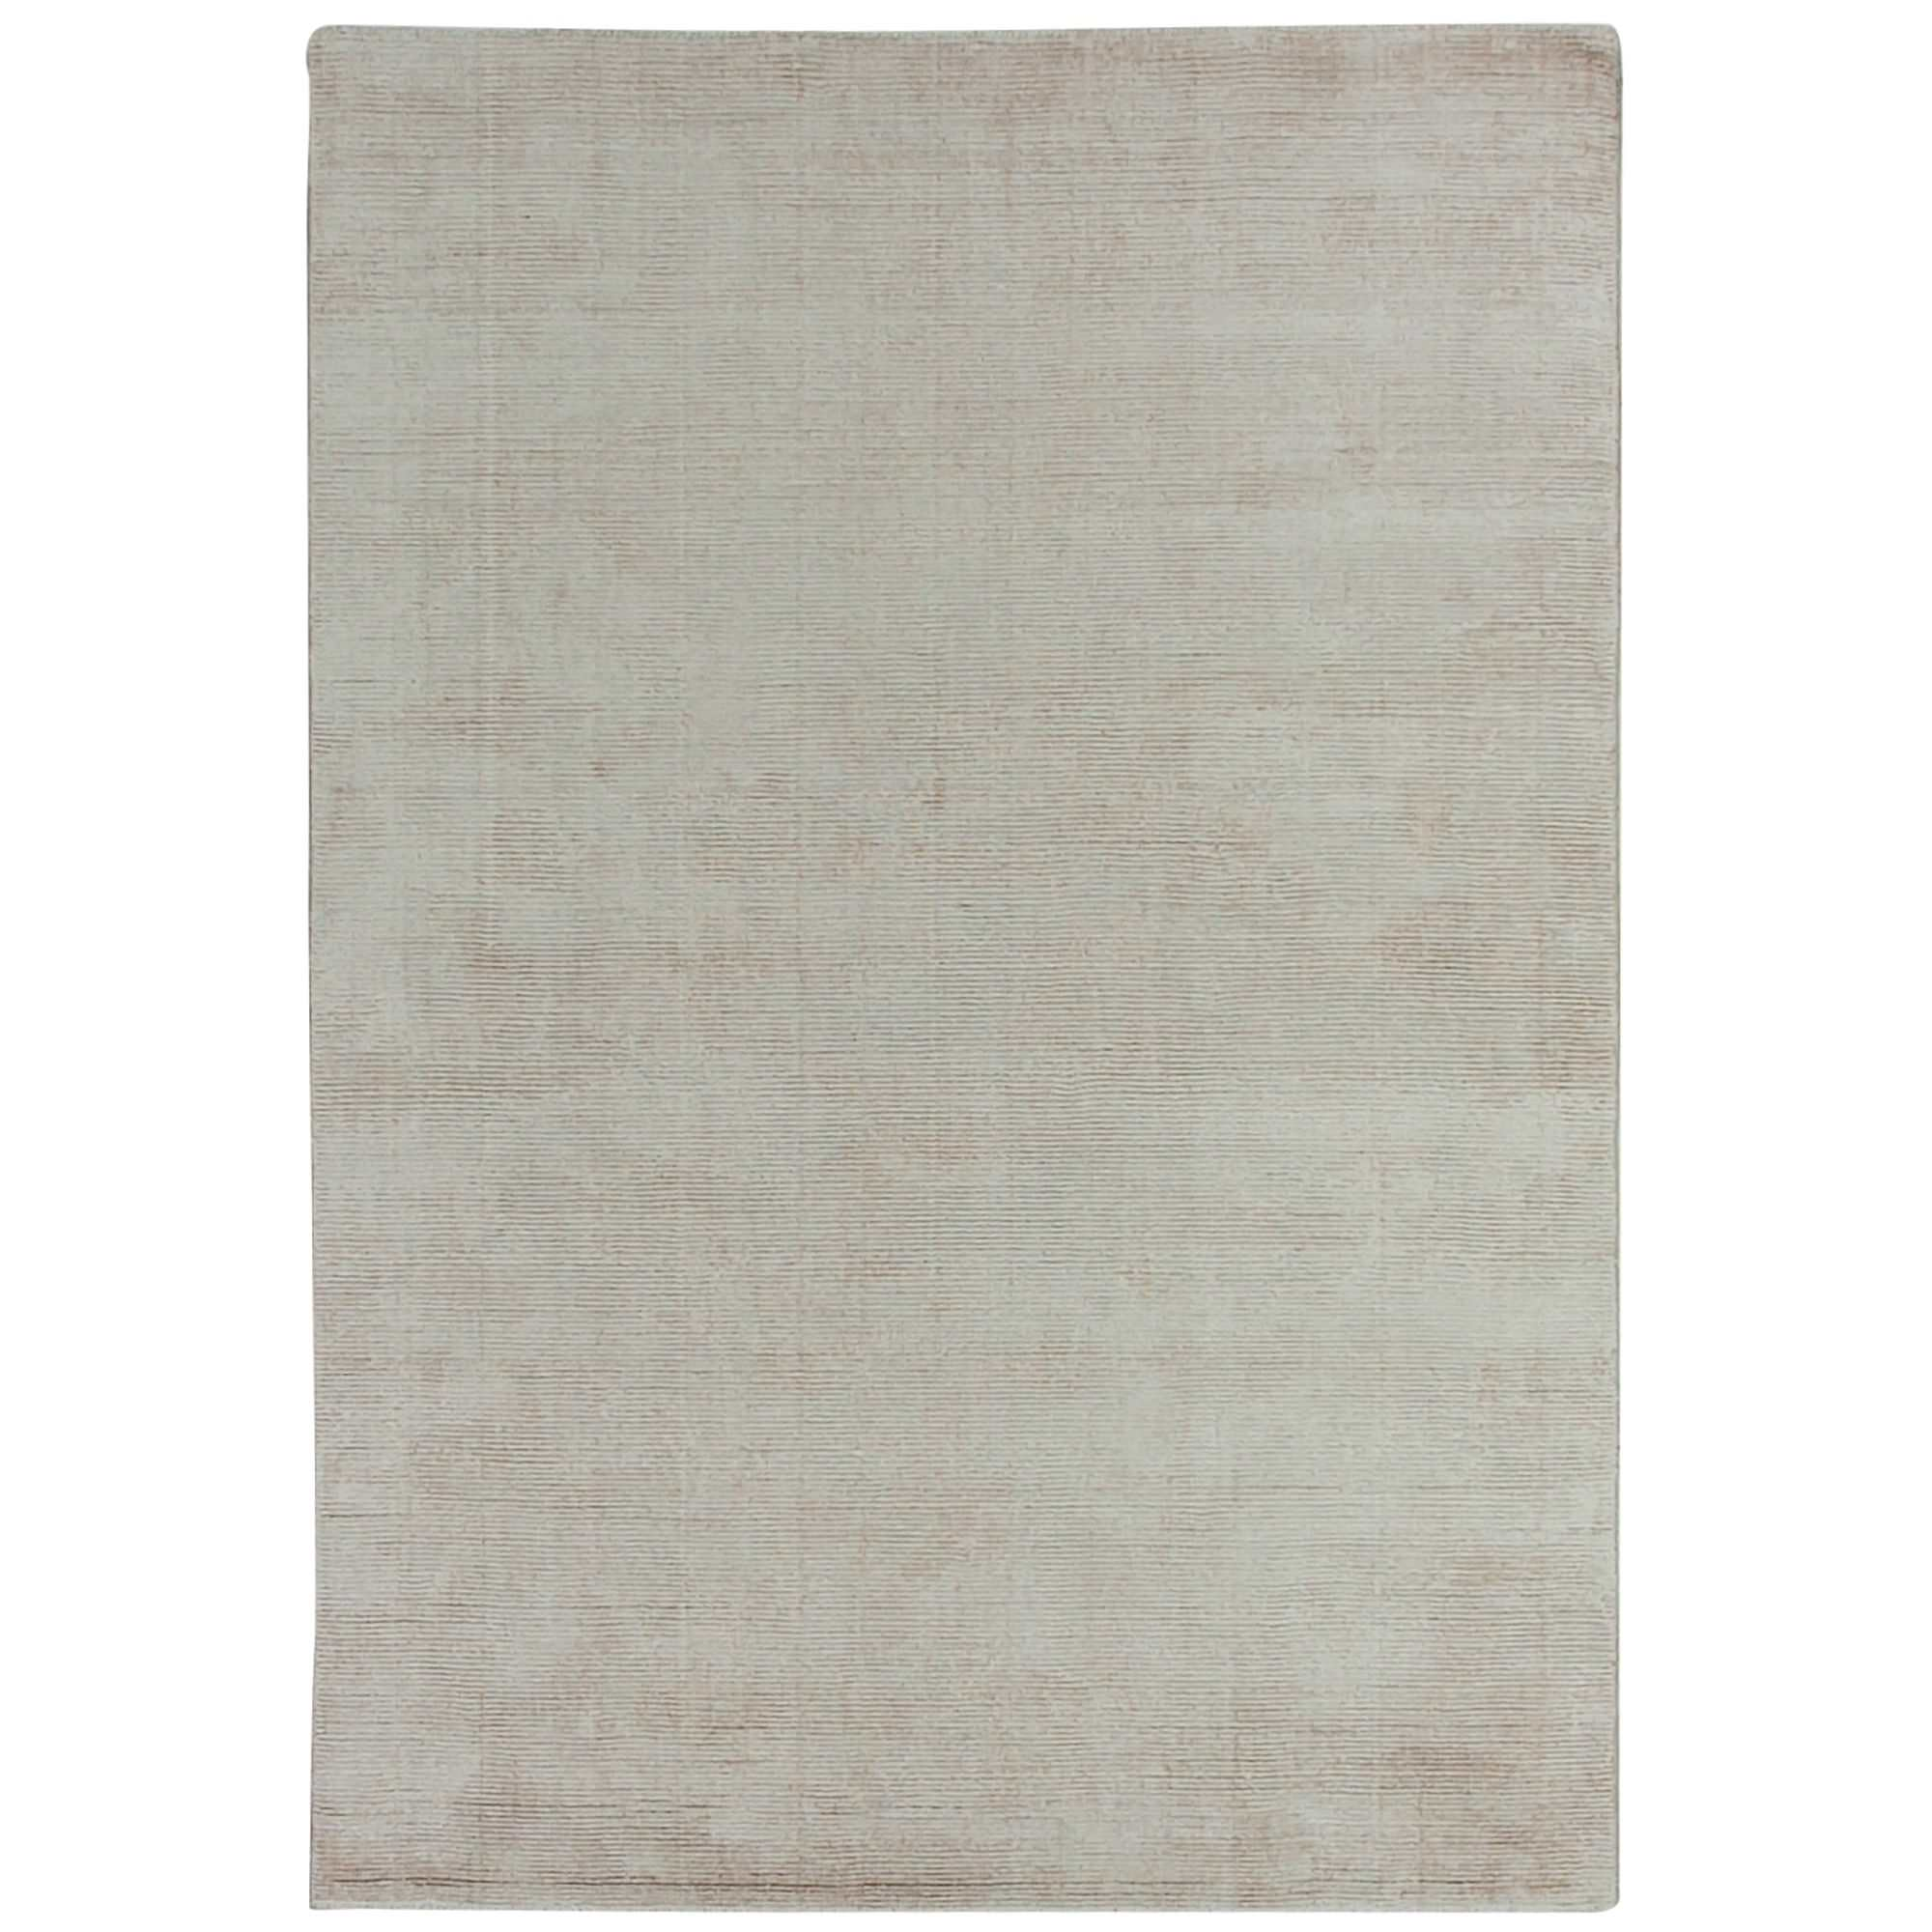 Elements Hand Knotted Wool Rug, 350x450cm, Beige